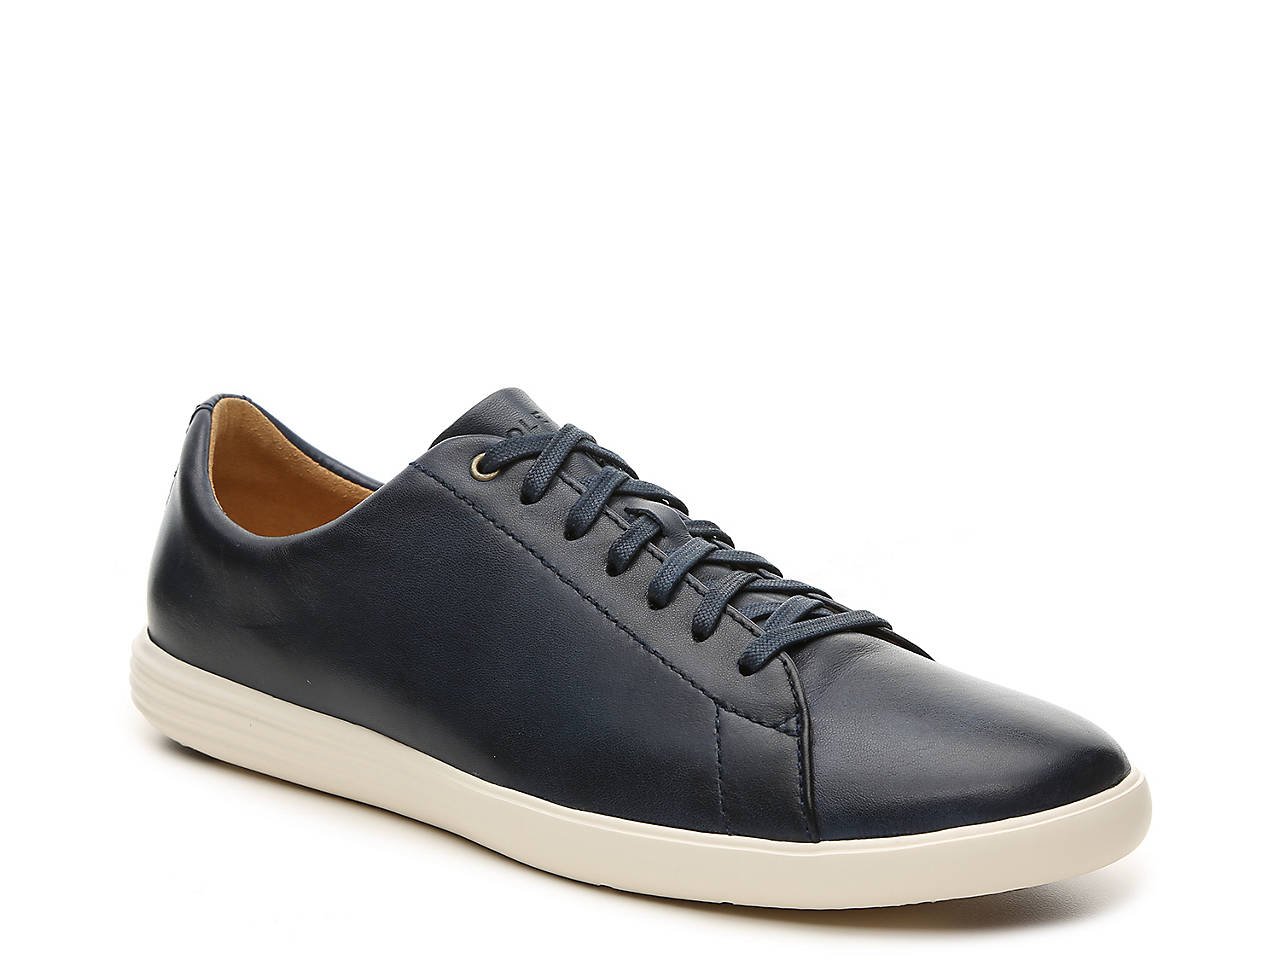 sport is mens sneaker chamaripa best comfortable comforter for men the tall shoes elevator